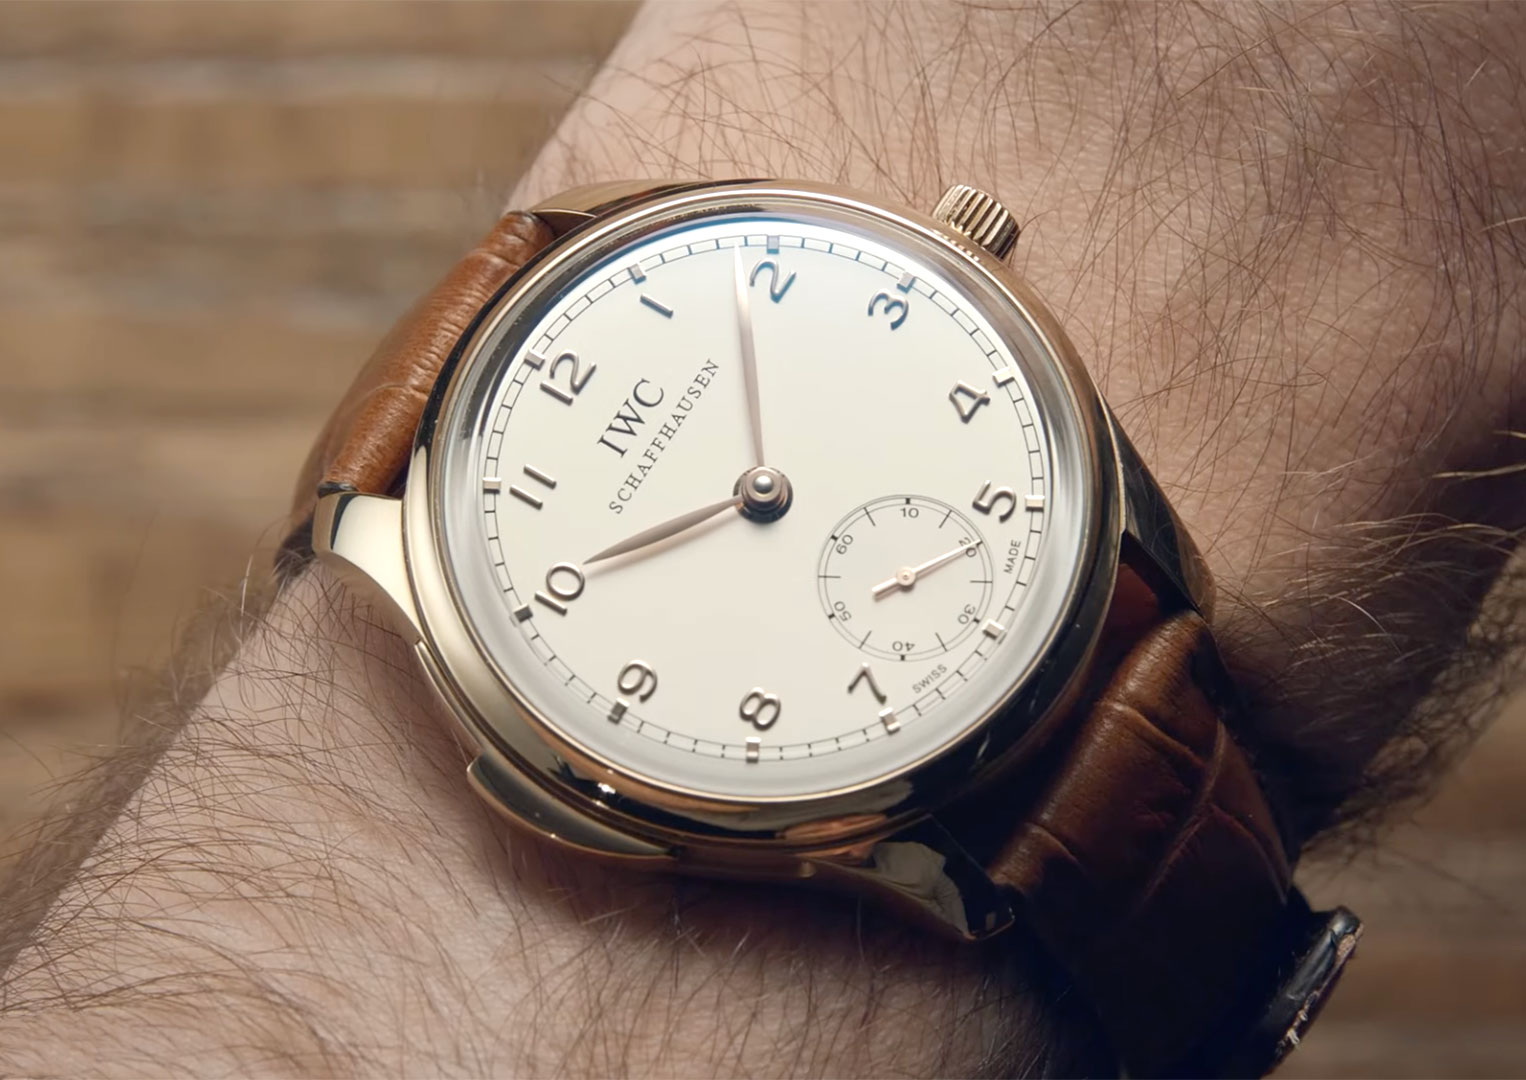 The IWC Portugieser Minute Repeater IW544907 has a diameter of 44.2mm and a height of 14mm